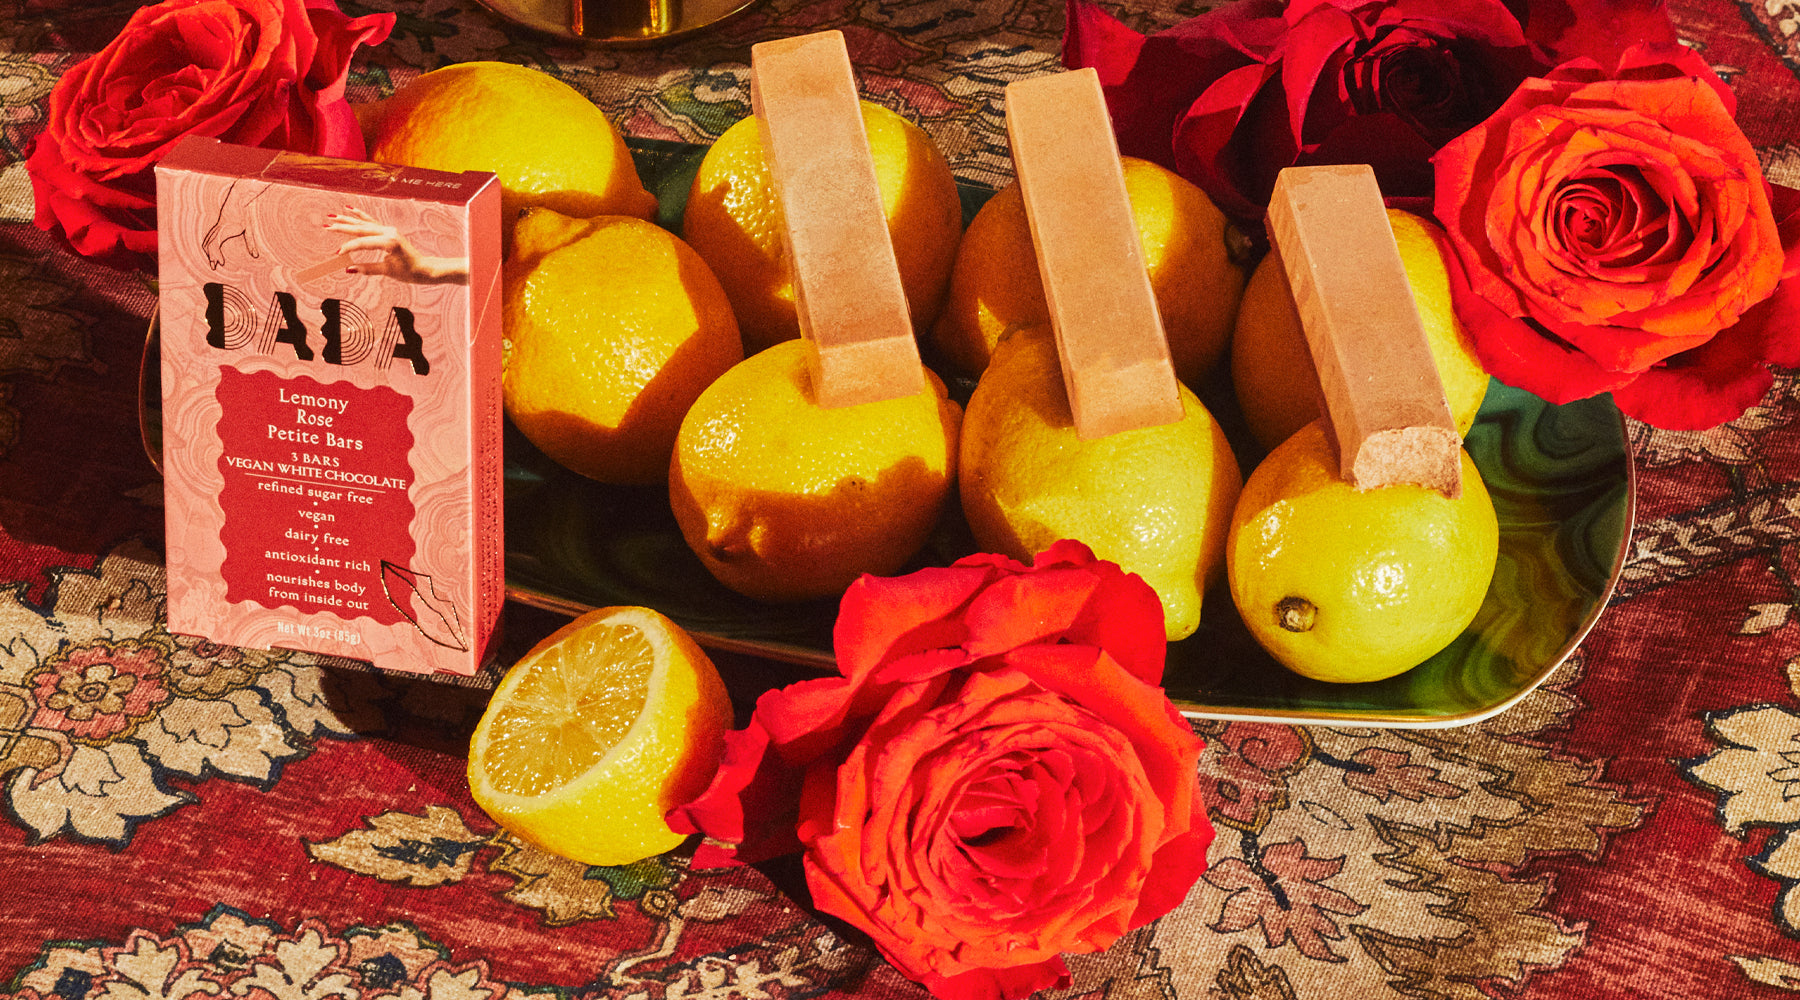 lemon, rose, vegan, white chocolate, coconut, dada daily, make decadence a ritual, elevate your snacking moment